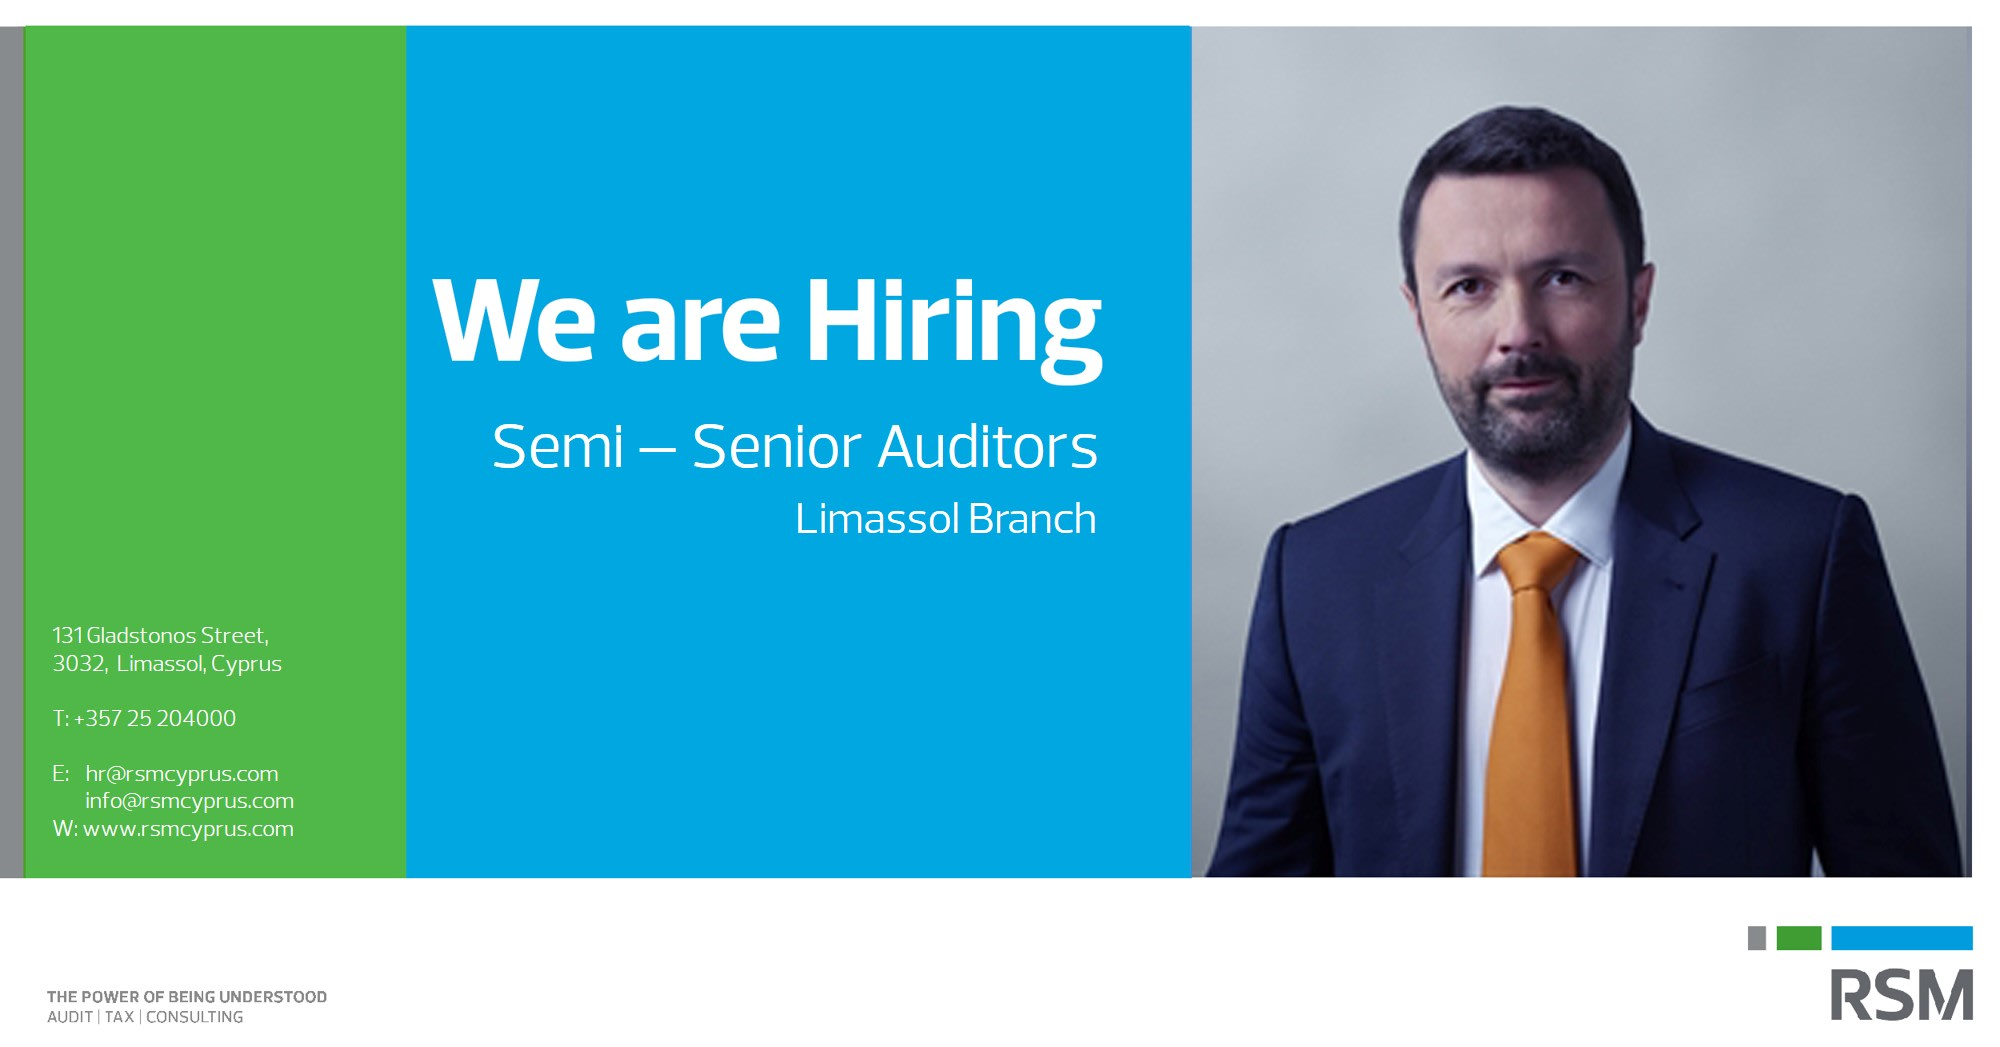 We are Hiring Semi_Senior_Auditors